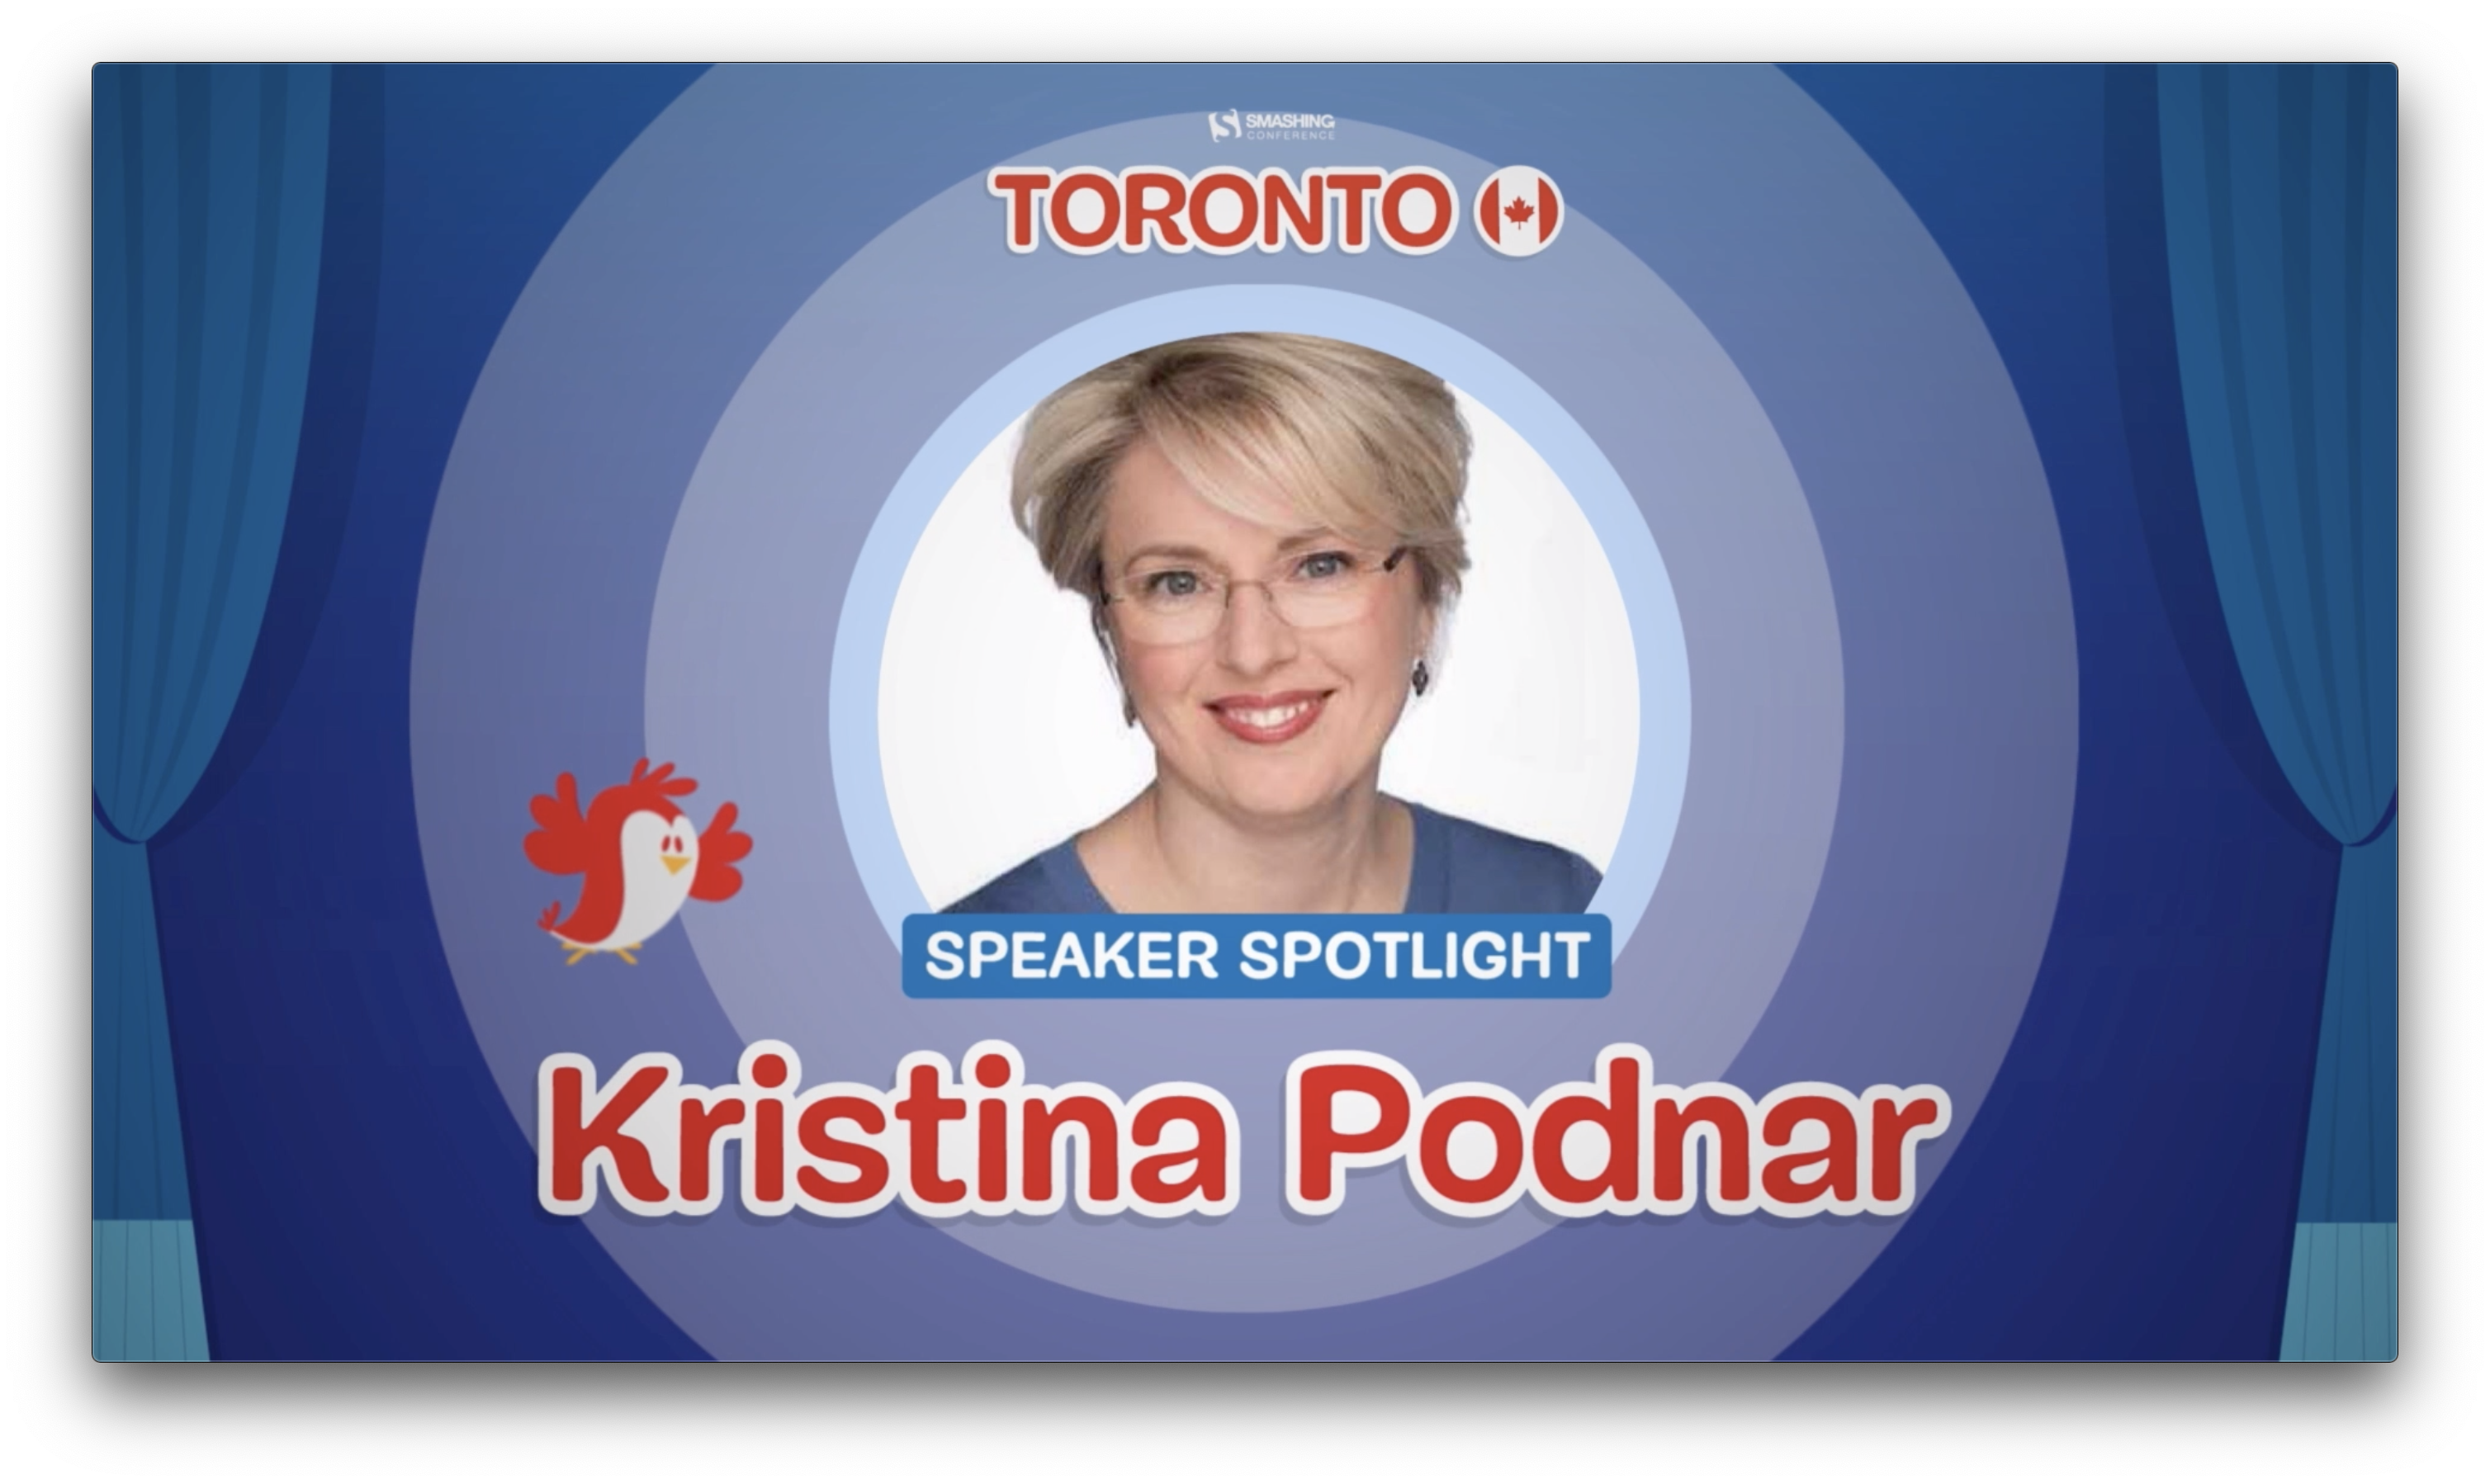 Setting Up A Digital Policy: An Interview With Kristina Podnar